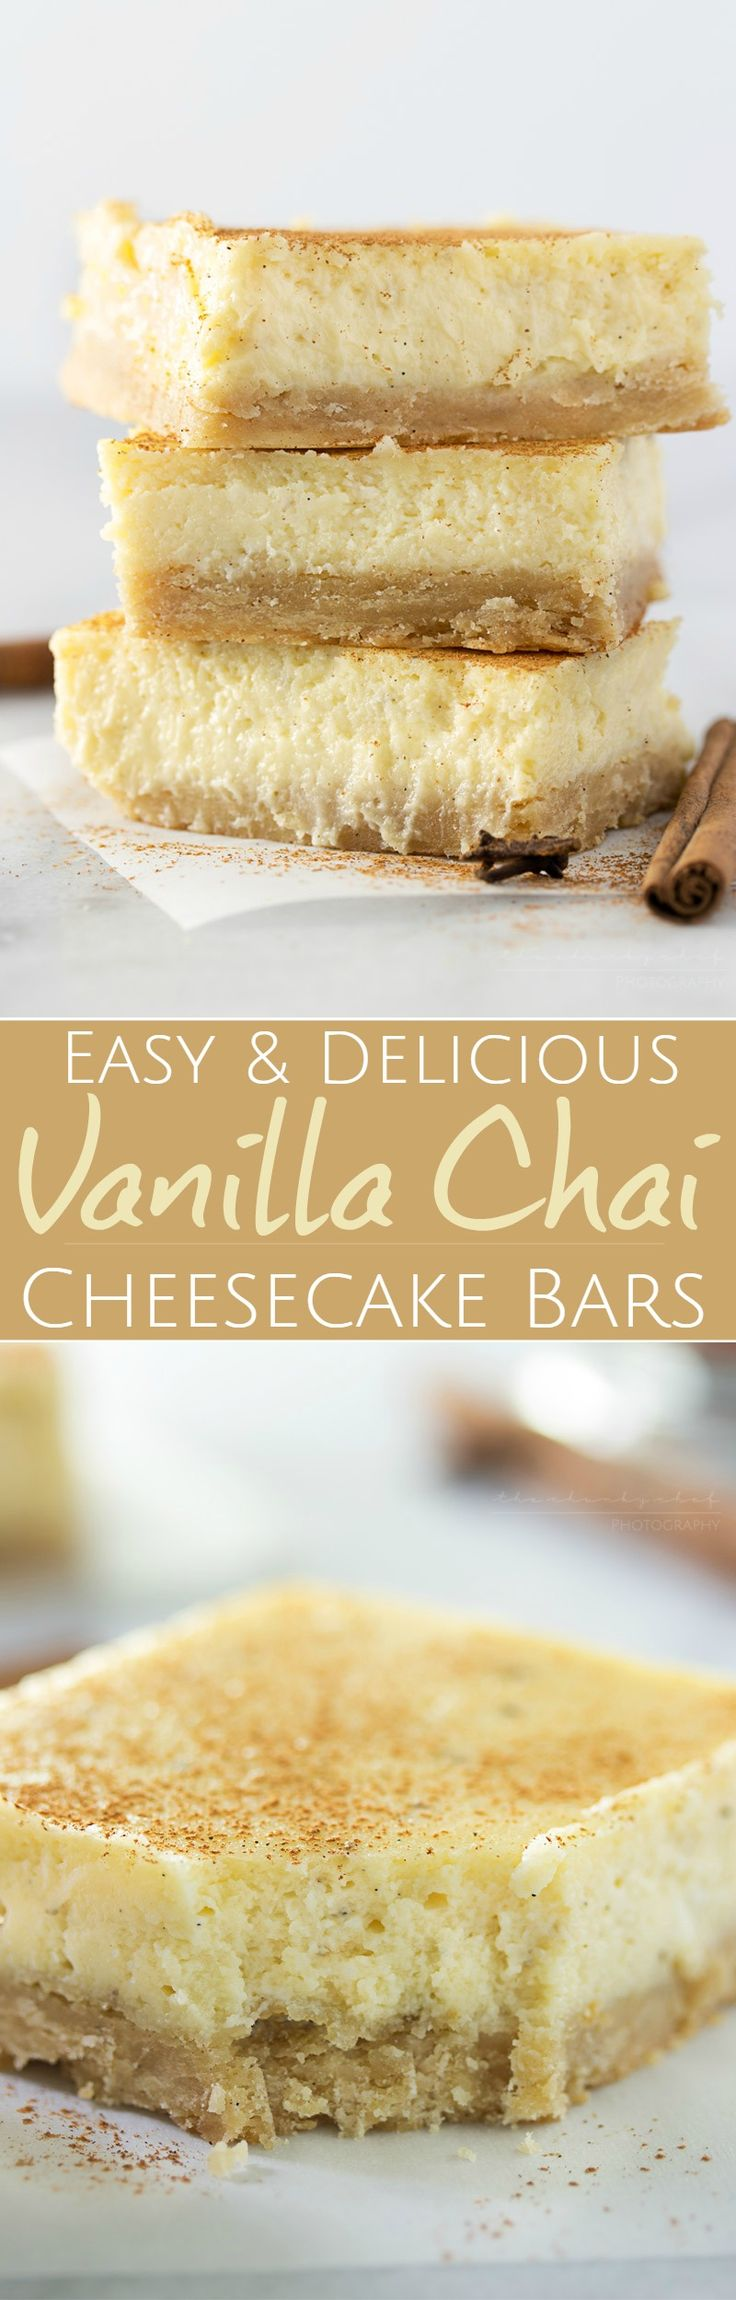 Vanilla Chai Cheesecake Bars | Love cheesecake, but don't want a whole cake? These lusciously creamy cheesecake bars are flavored with chai and vanilla bean for the perfect treat! | http://thechunkychef.com